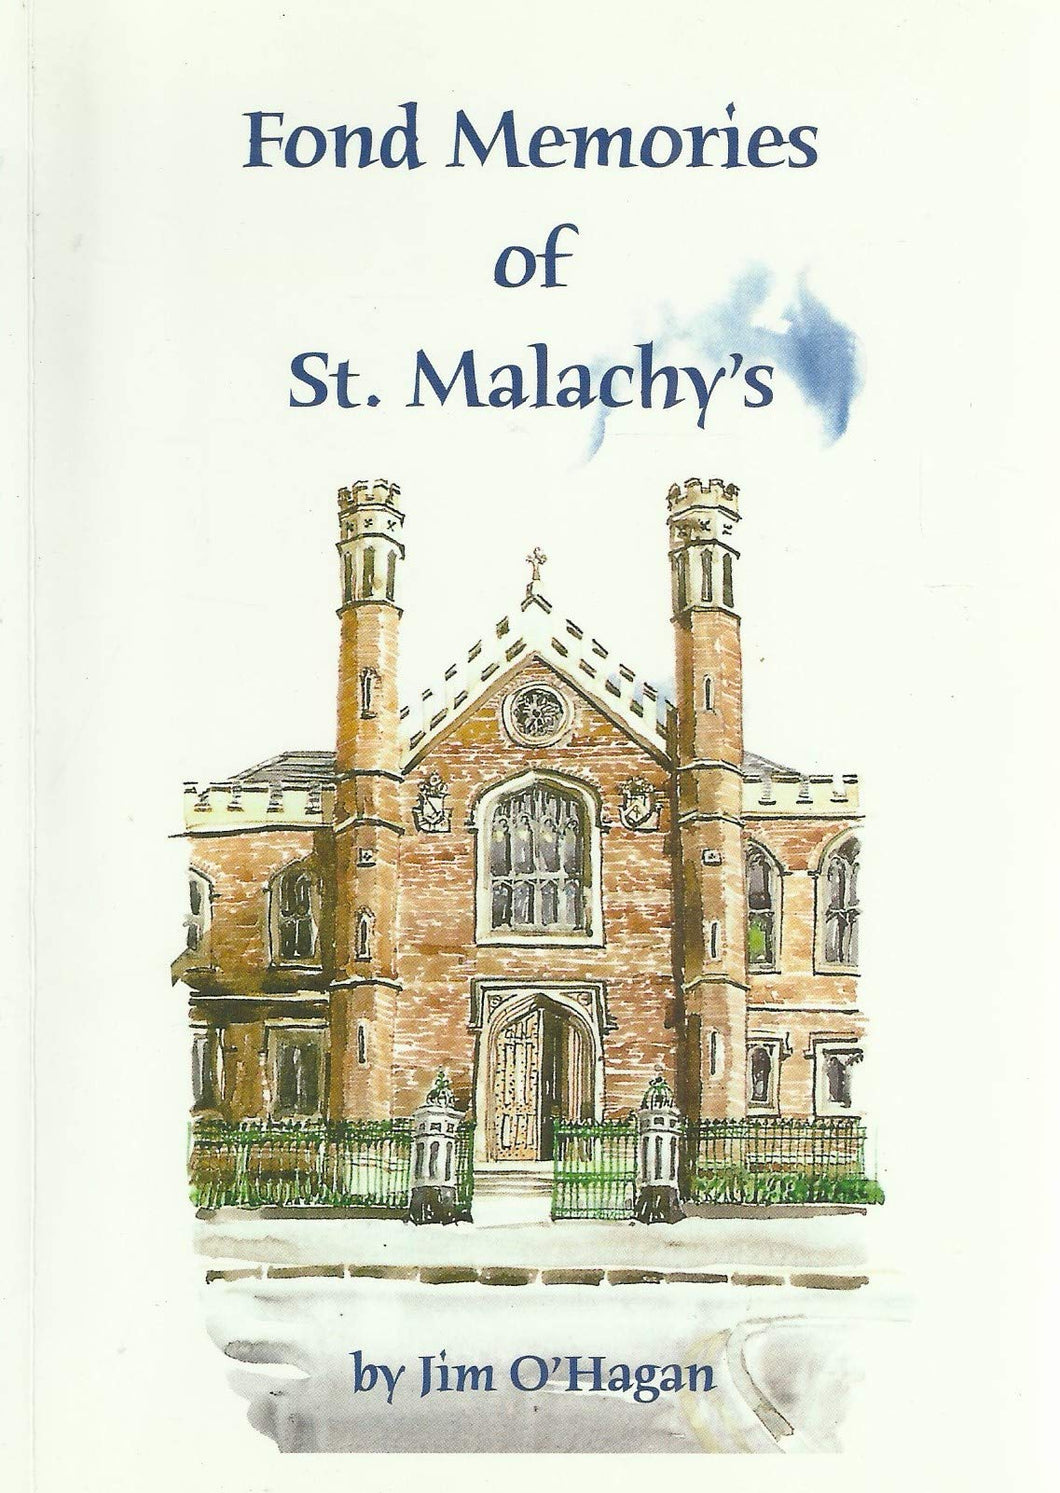 Fond Memories of St. Malachy's